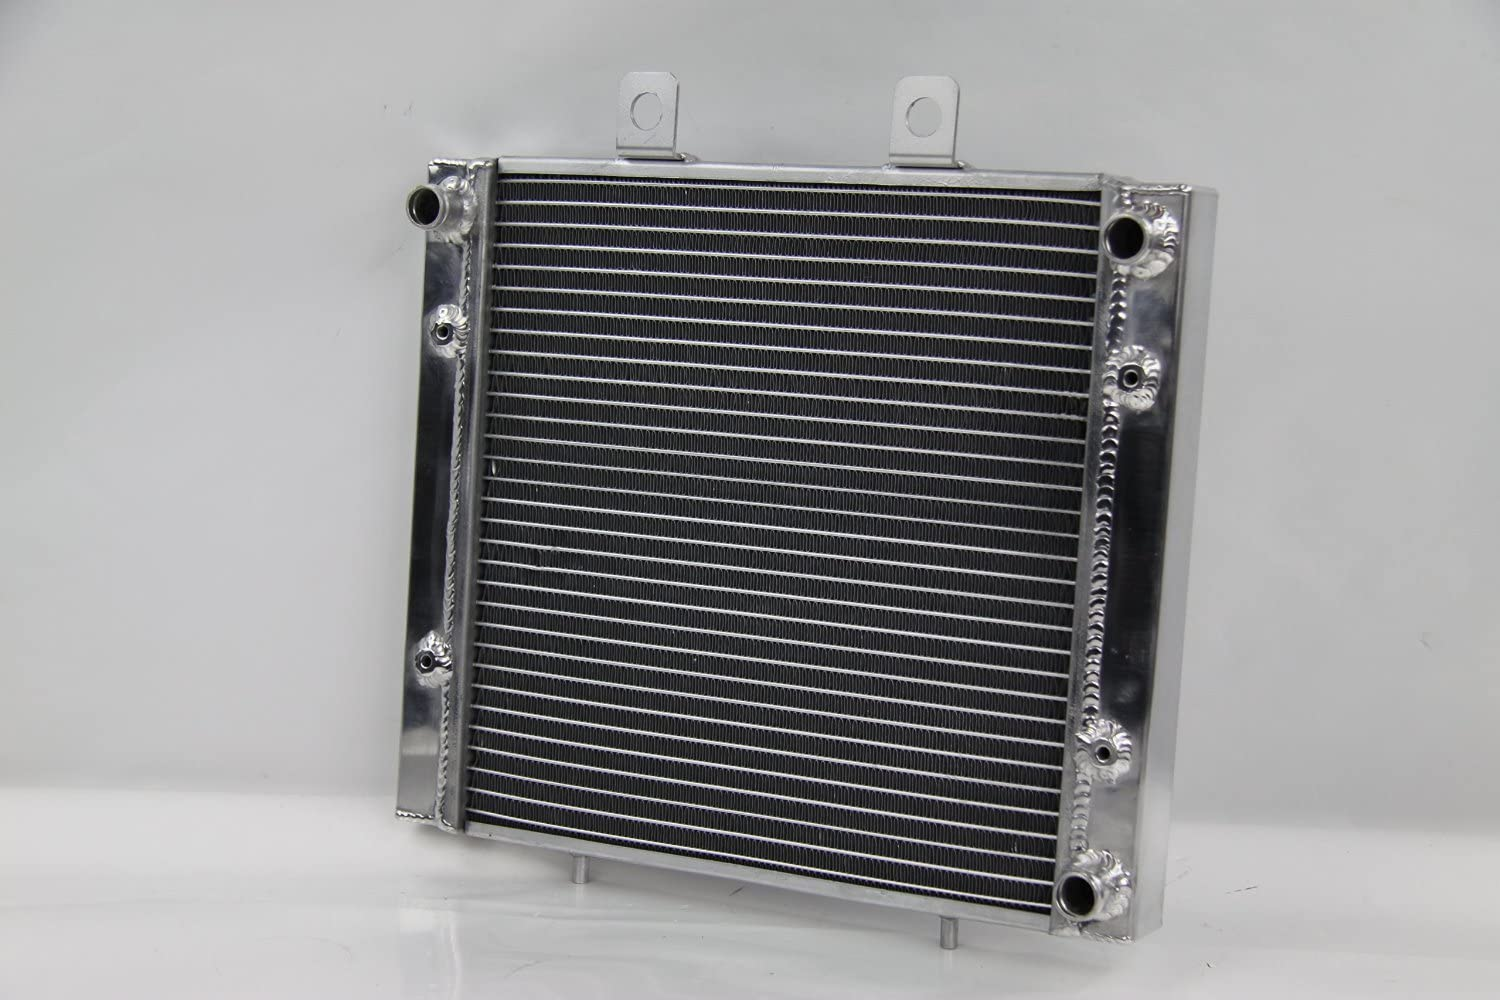 Brand New ATV Radiator Polaris Sportsman 570 EFI 2017 6x6